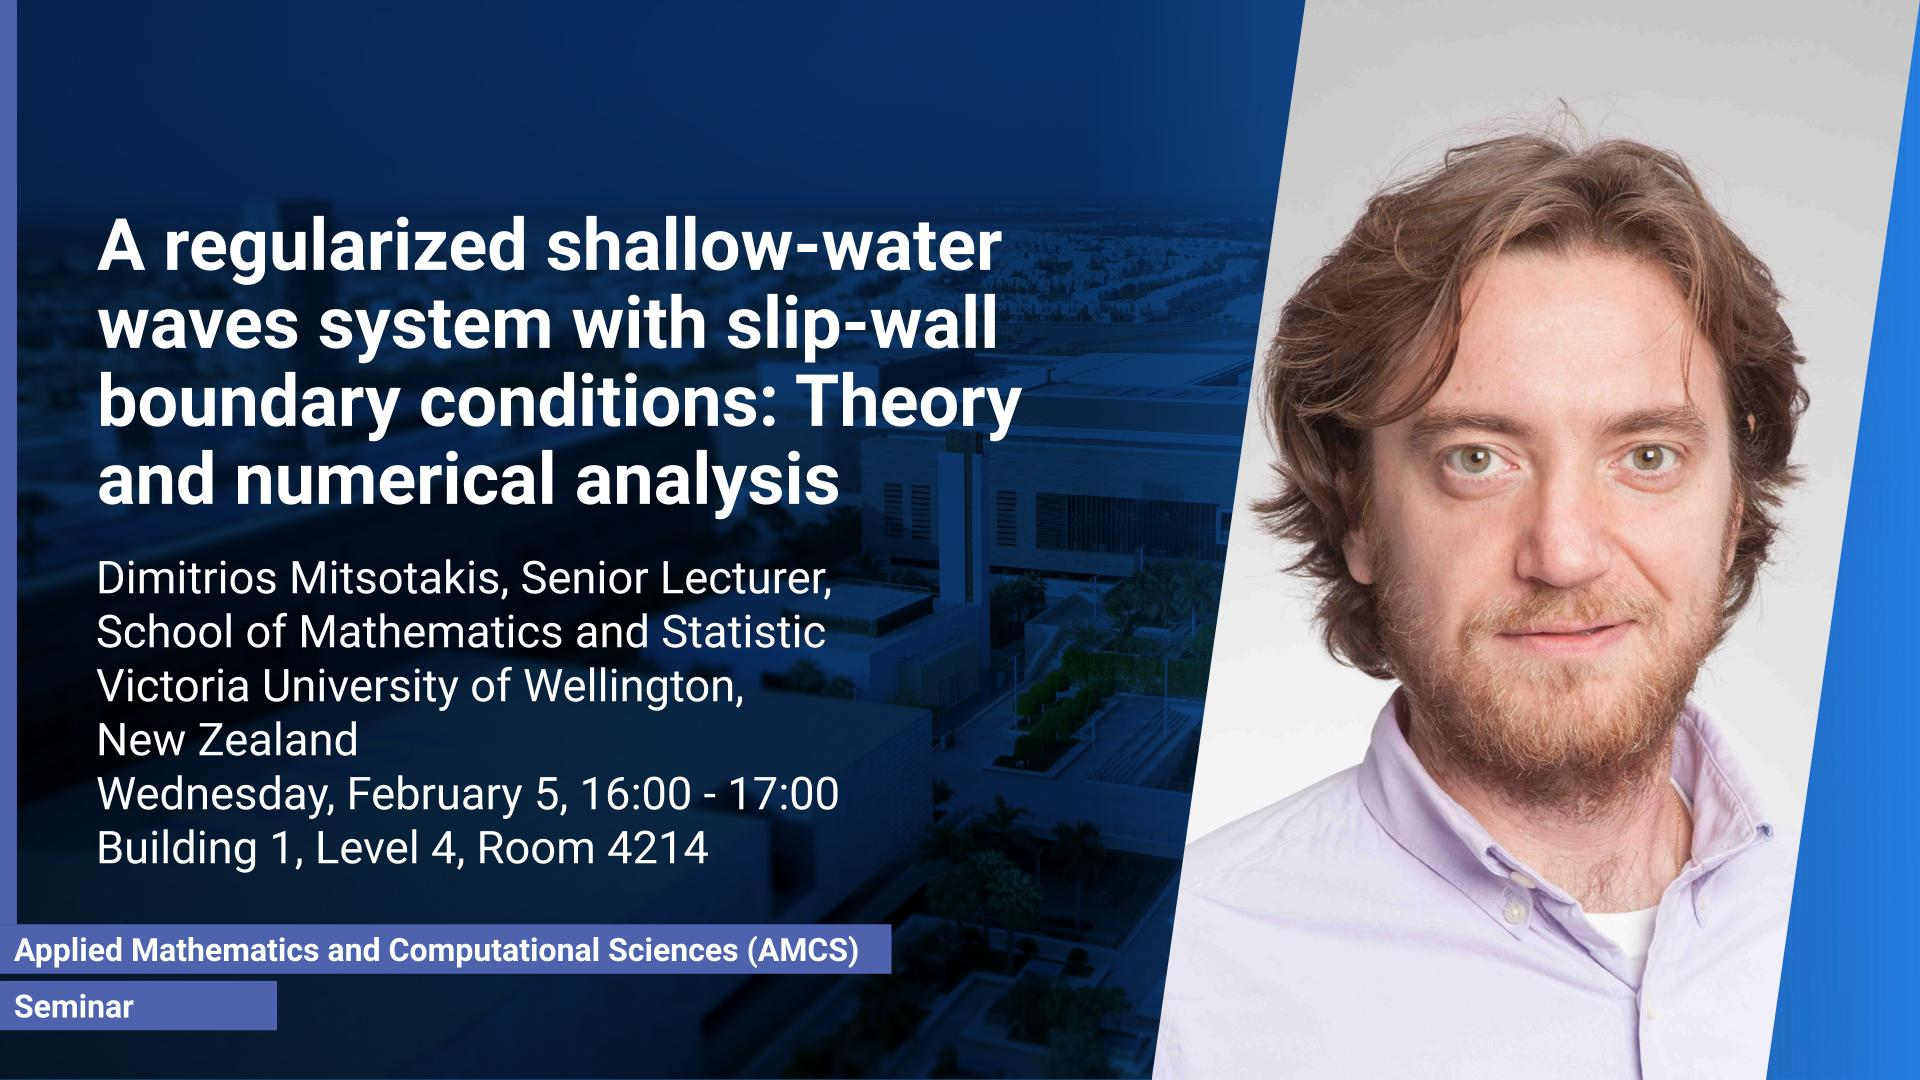 KAUST CEMSE AMCS Seminar Dimitrios Mitsotakis a regularized shallow water waves system